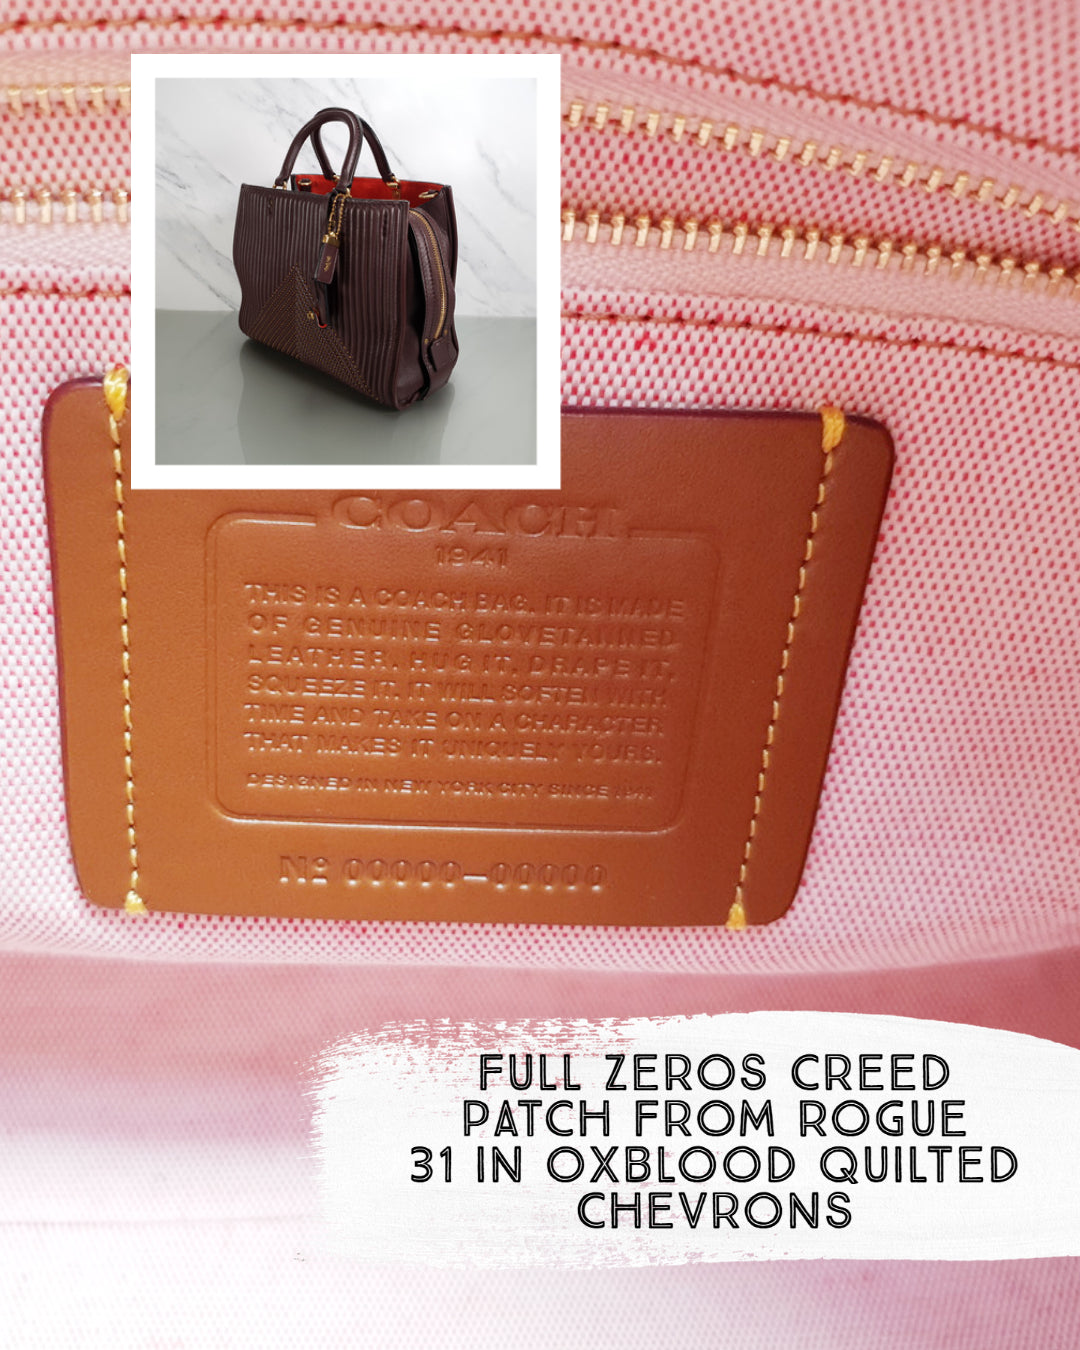 Coach Sample Bag Rogue 31 Oxblood Quilted Rivets Chevrons